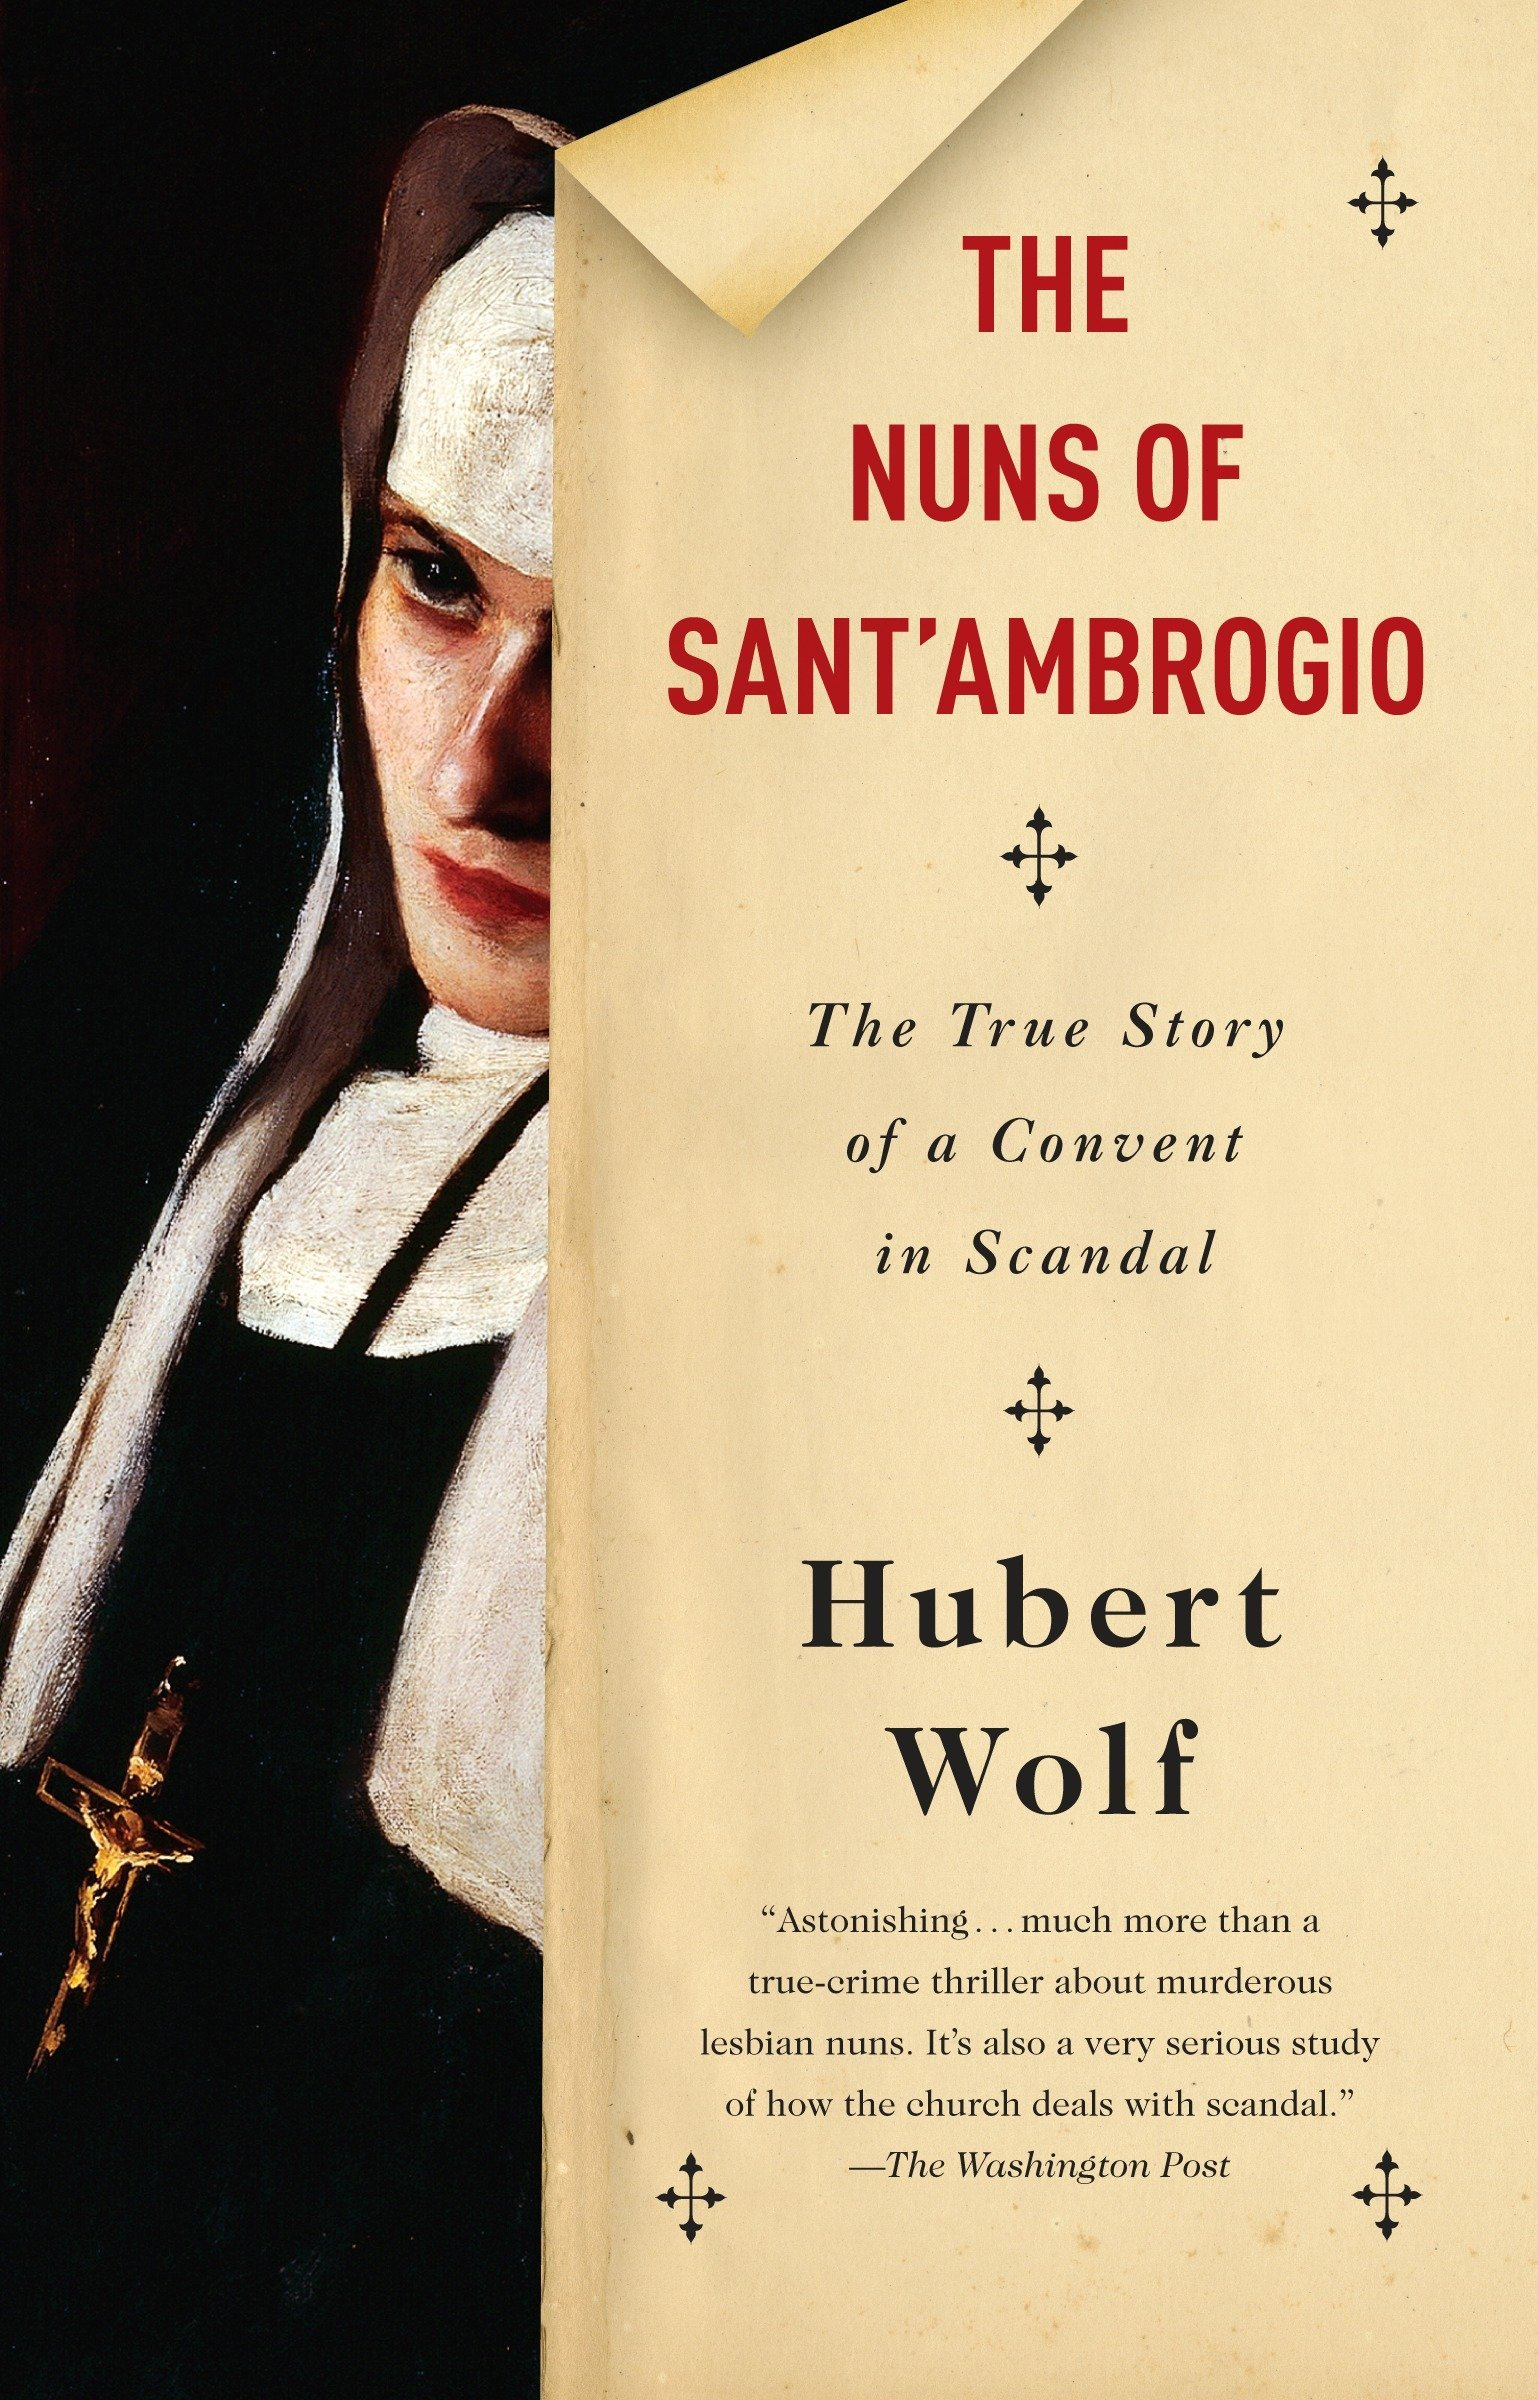 The Nuns of Sant'Ambrogio: The True Story of a Convent in